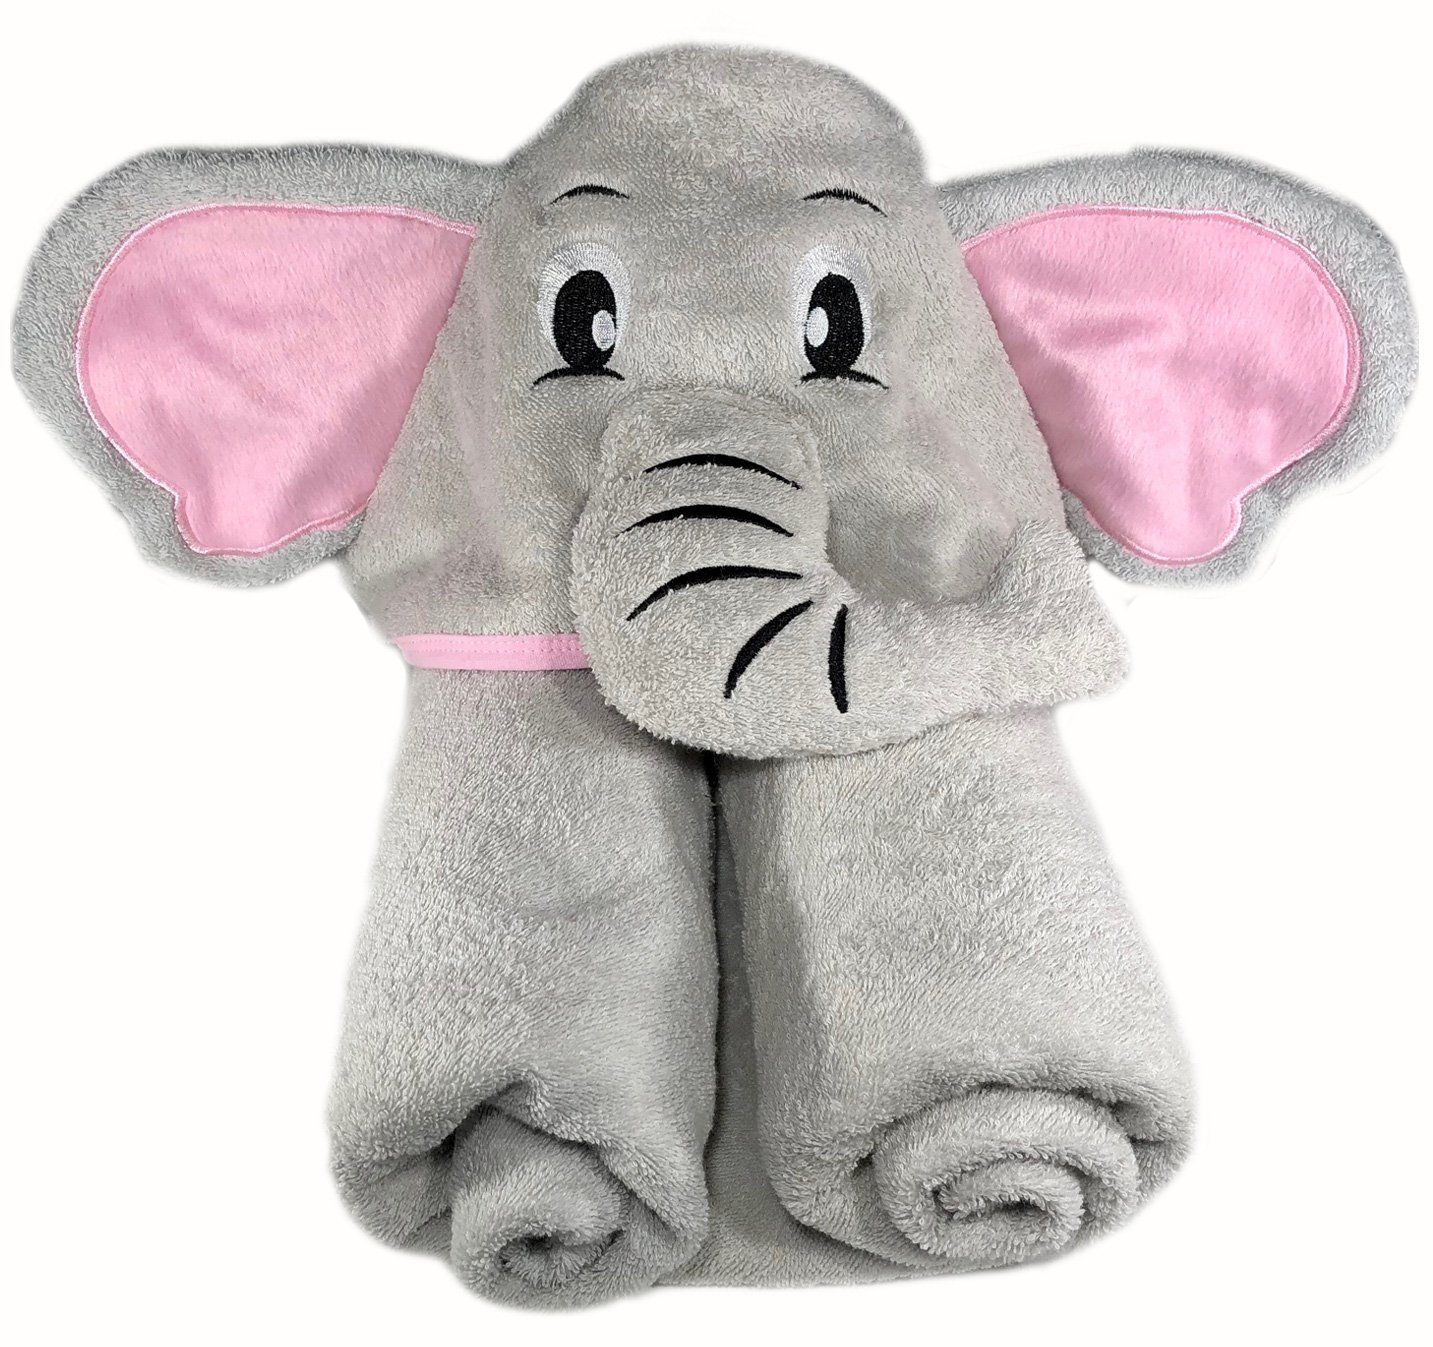 Elephant Hooded Bath Towel   Premium Cotton   For Baby, Infant, Toddler, Kids, Boy, or Girl   Extra Large Pink and Grey   Baby Shower GrowWILD Elephant-Pink